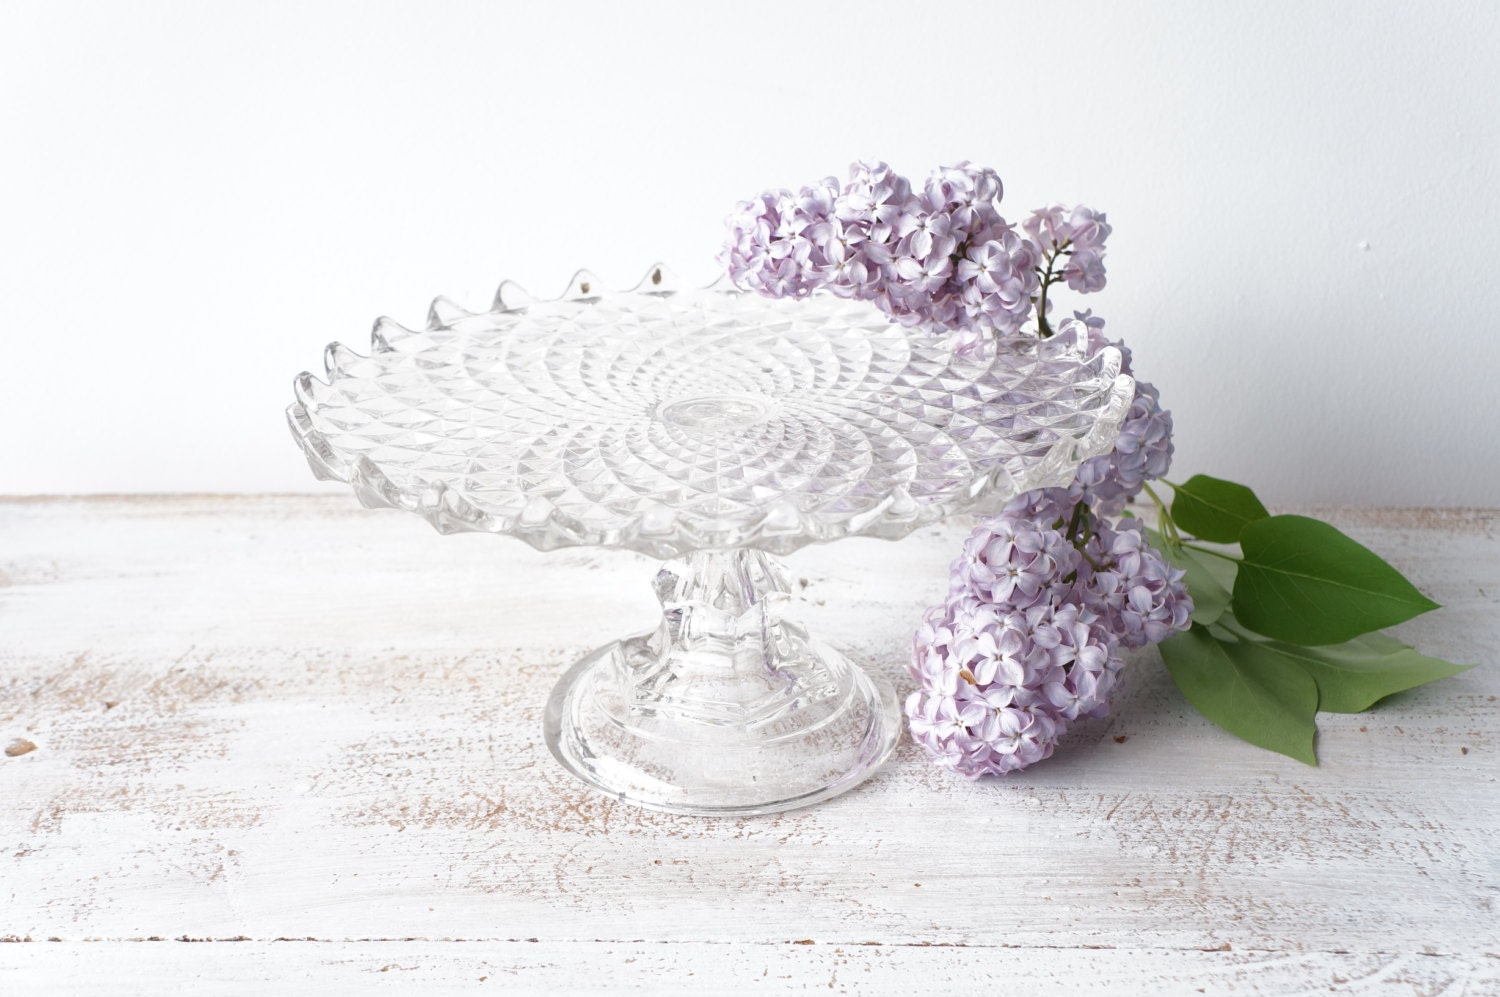 Items similar to Vintage Glass Cake Stand, Glass Cake ...